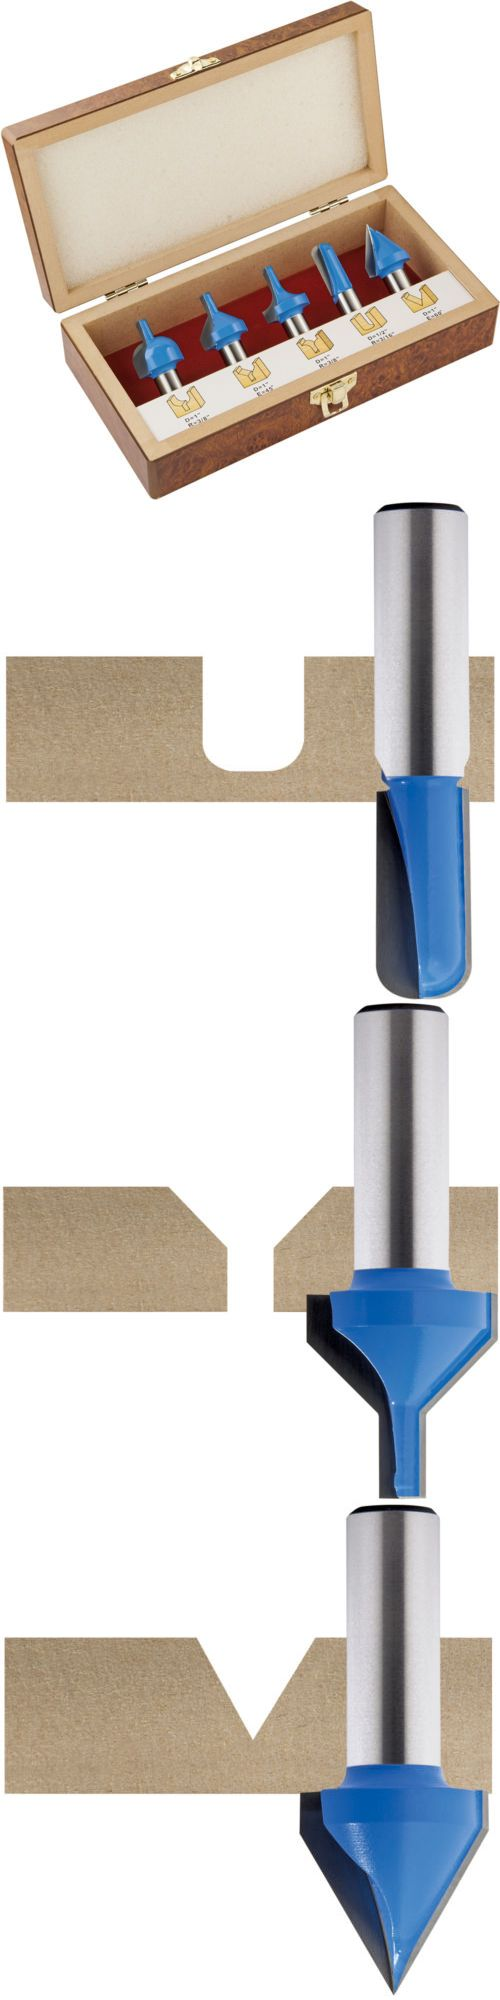 Router Bits 177001: Rockler 5-Piece Cnc Router Bit Set -> BUY IT NOW ONLY: $199.99 on eBay!